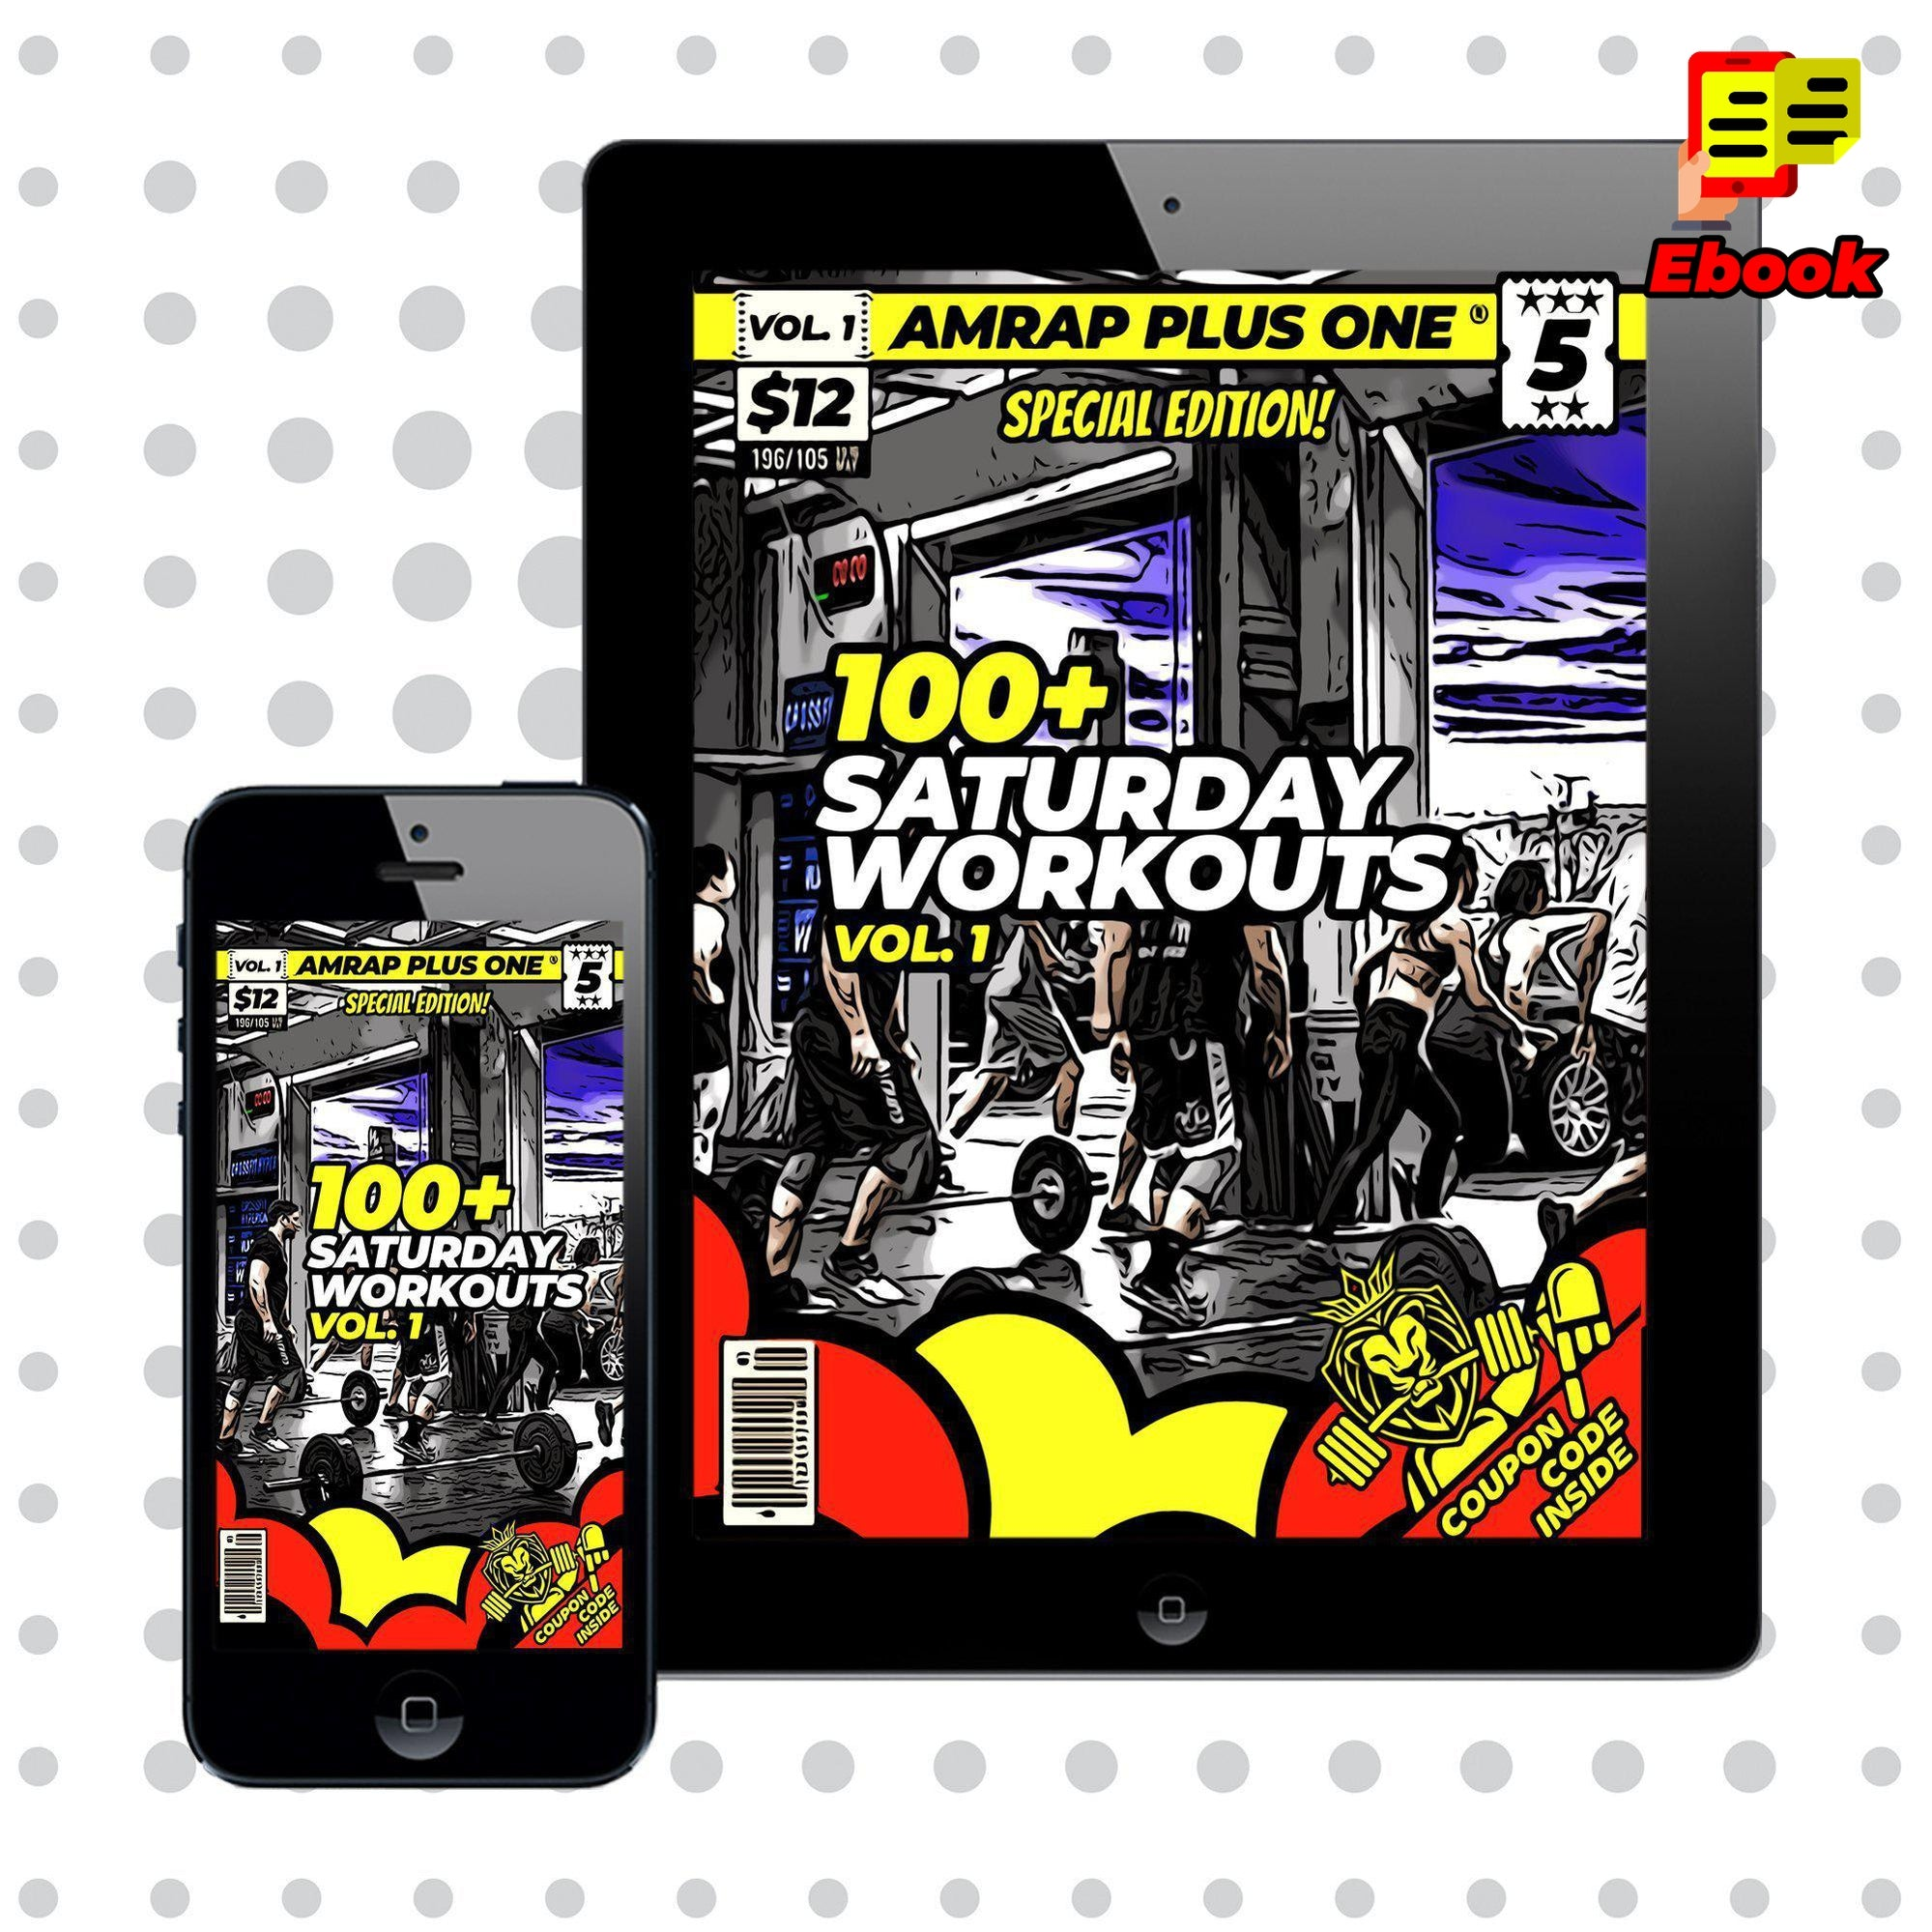 100+ Saturday Team Workouts Vol. 1 - AMRAP Plus One